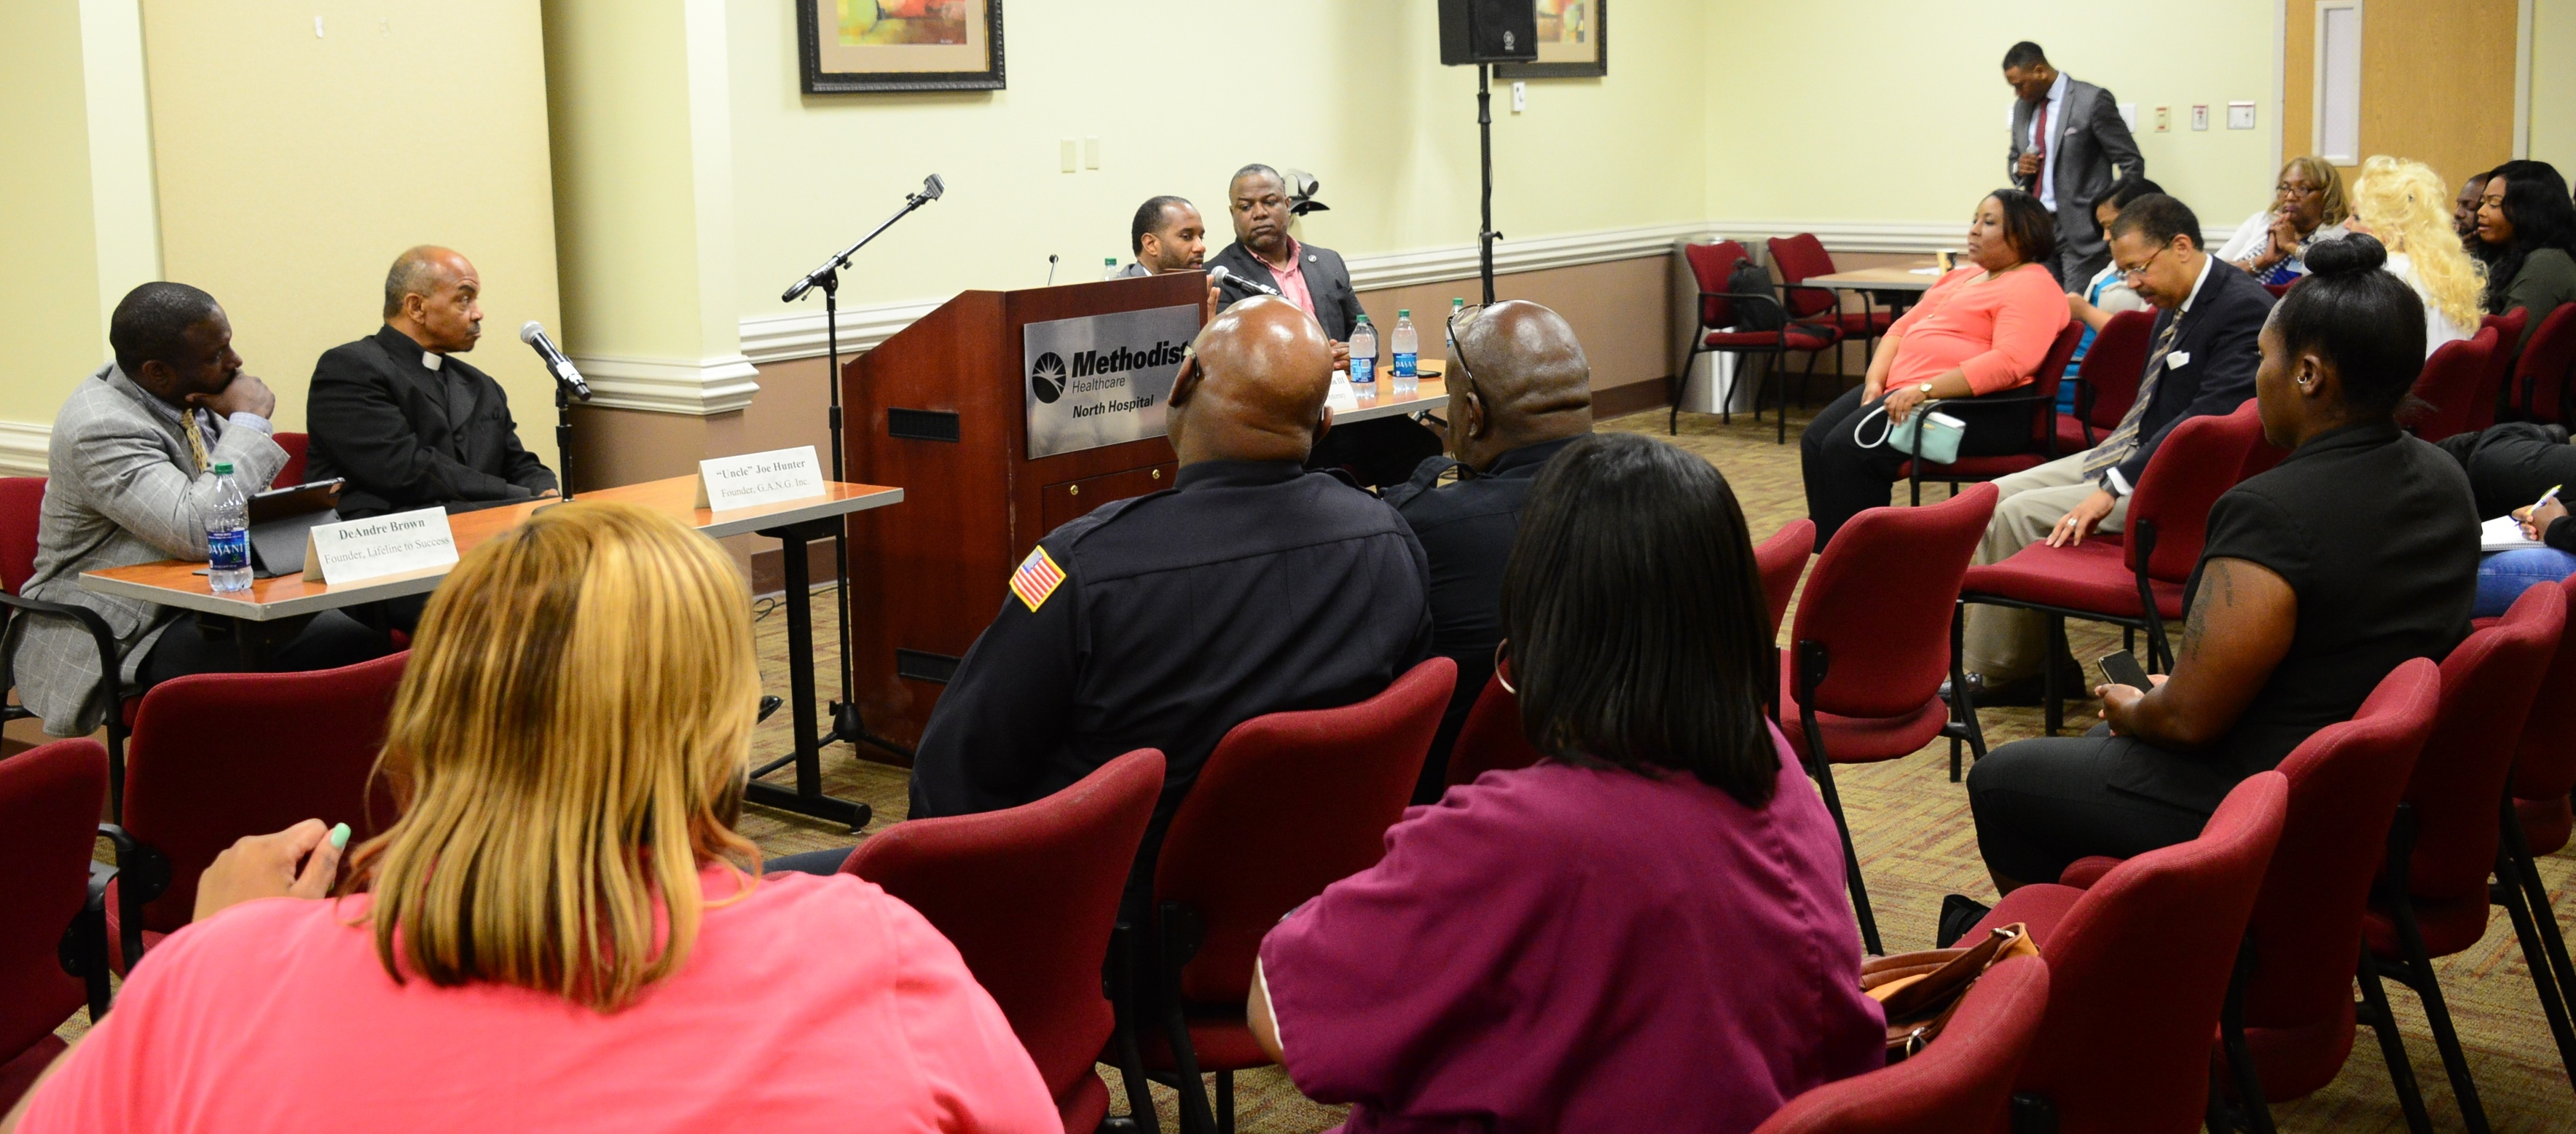 U.S. Attorney Stanton talks to community residents during Violence Prevention Forum.